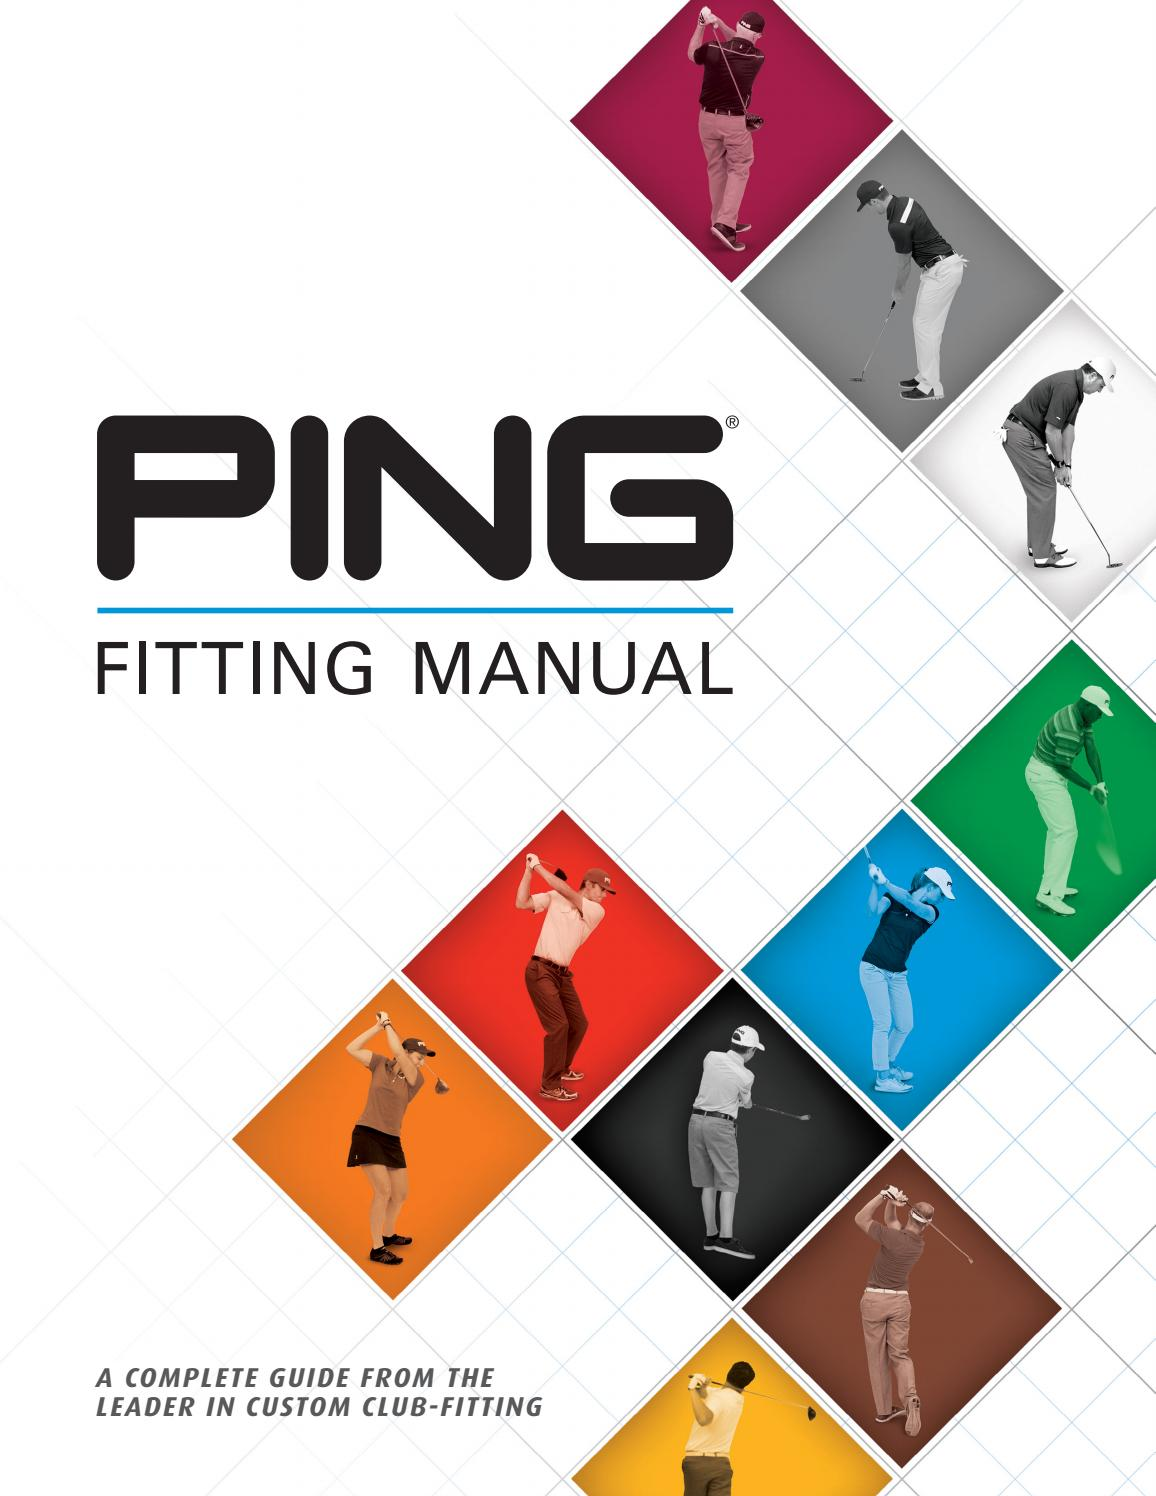 Ping fitting manual 2017 by ping europe ltd issuu nvjuhfo Images